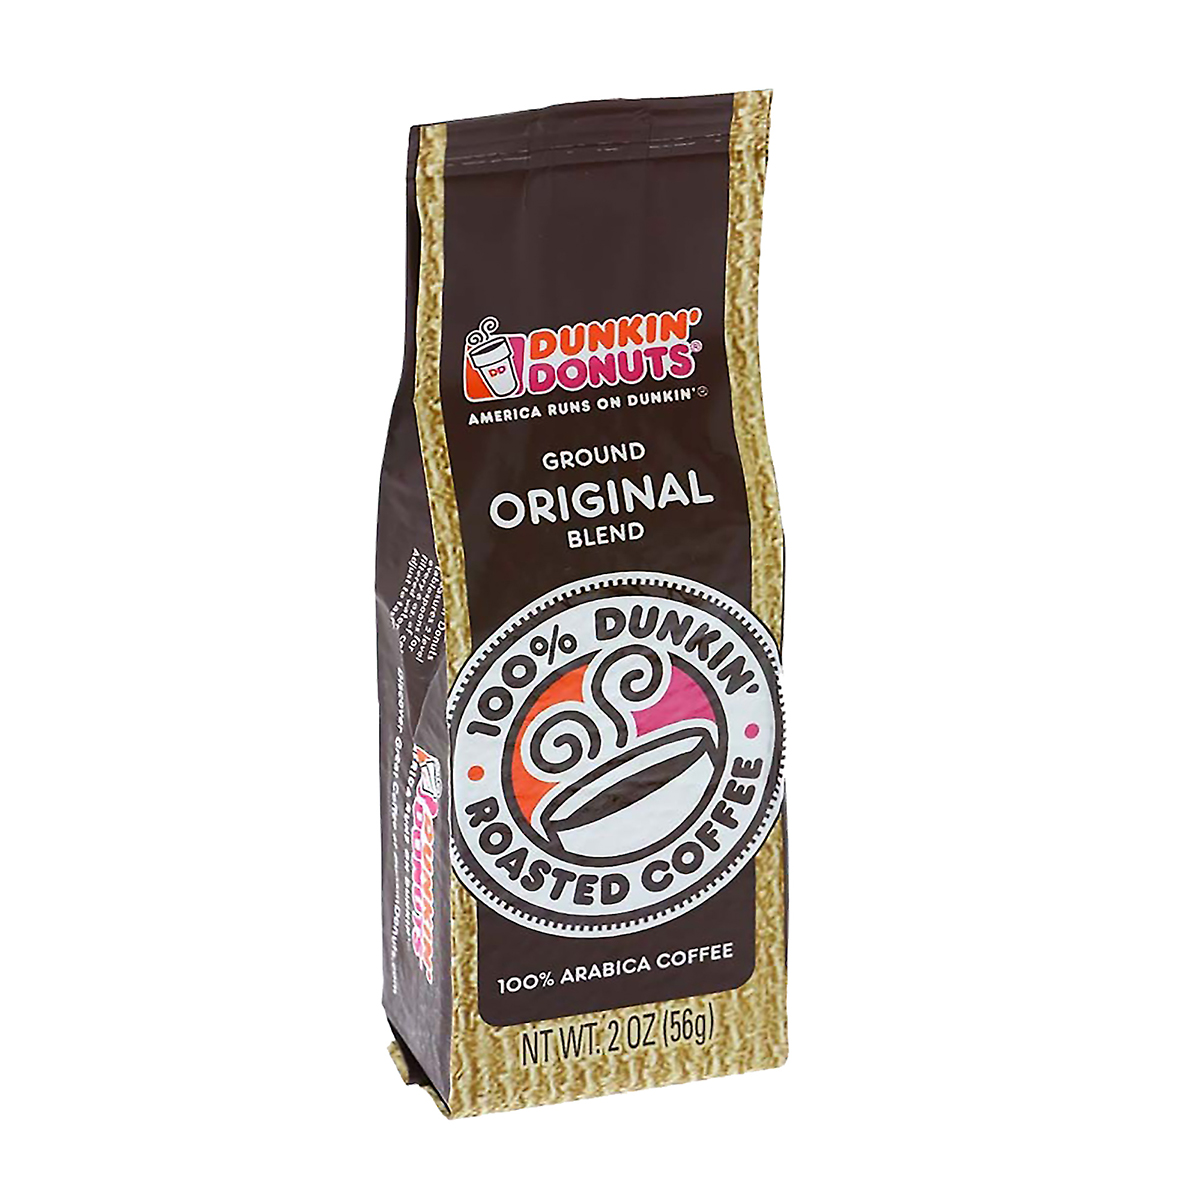 Original Blend Ground 2-oz Mini-Brick Coffee, 48 ct